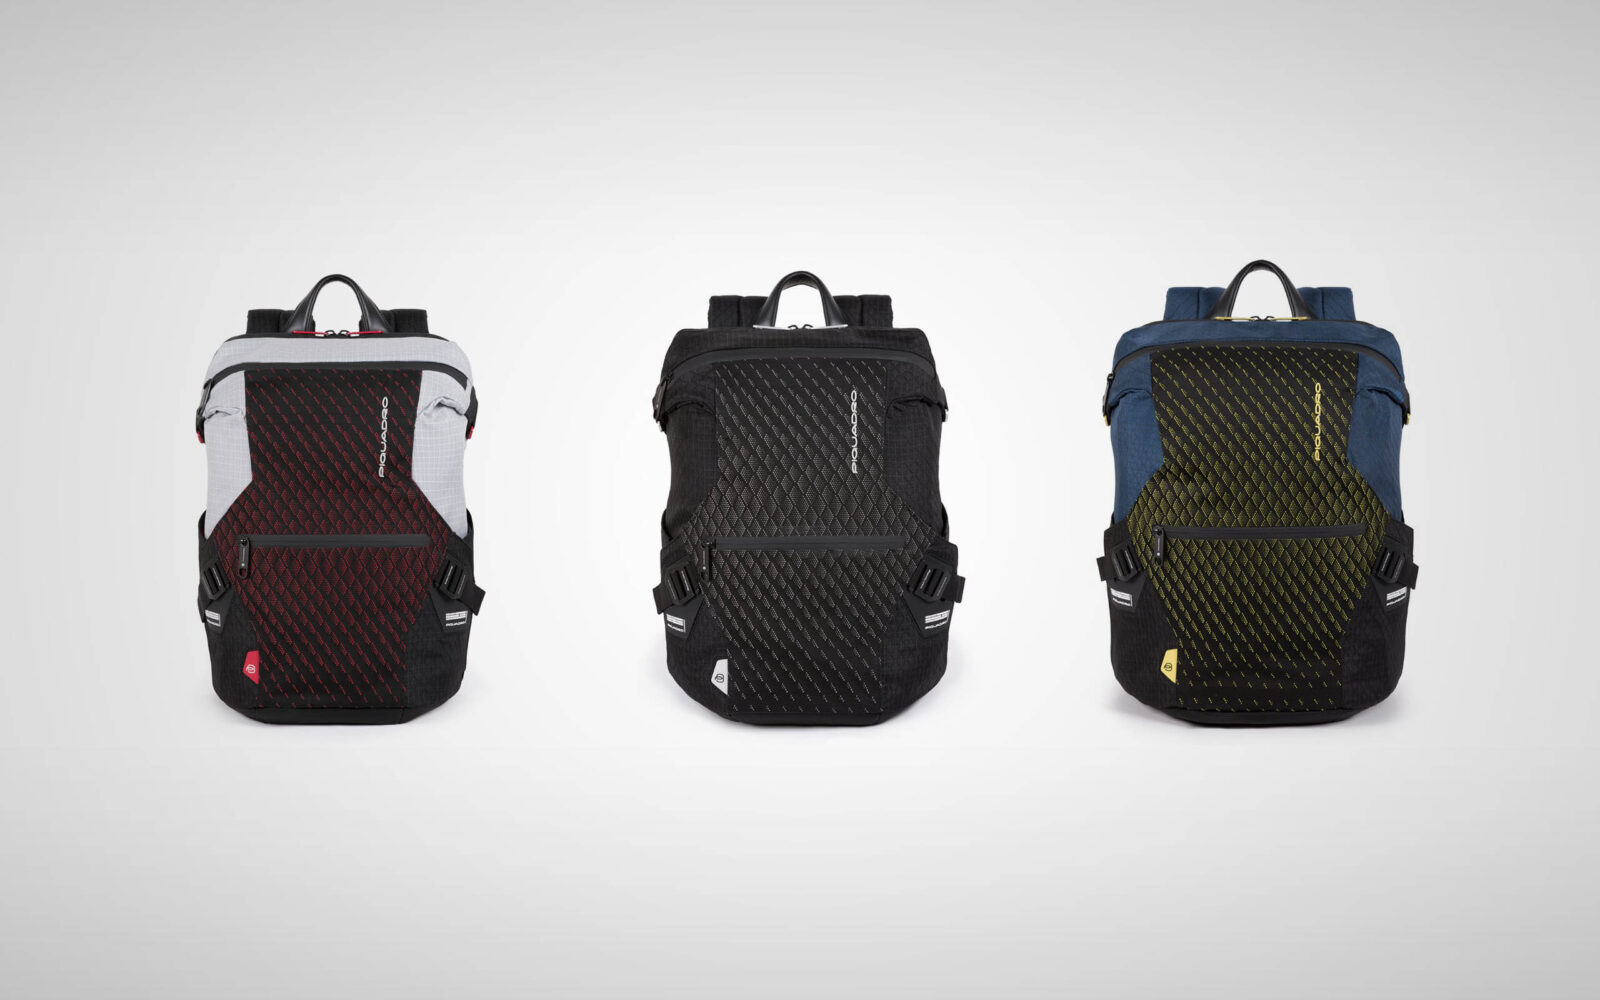 Piquadro PQ-Y Line: Tech, Light and Strong Backpacks